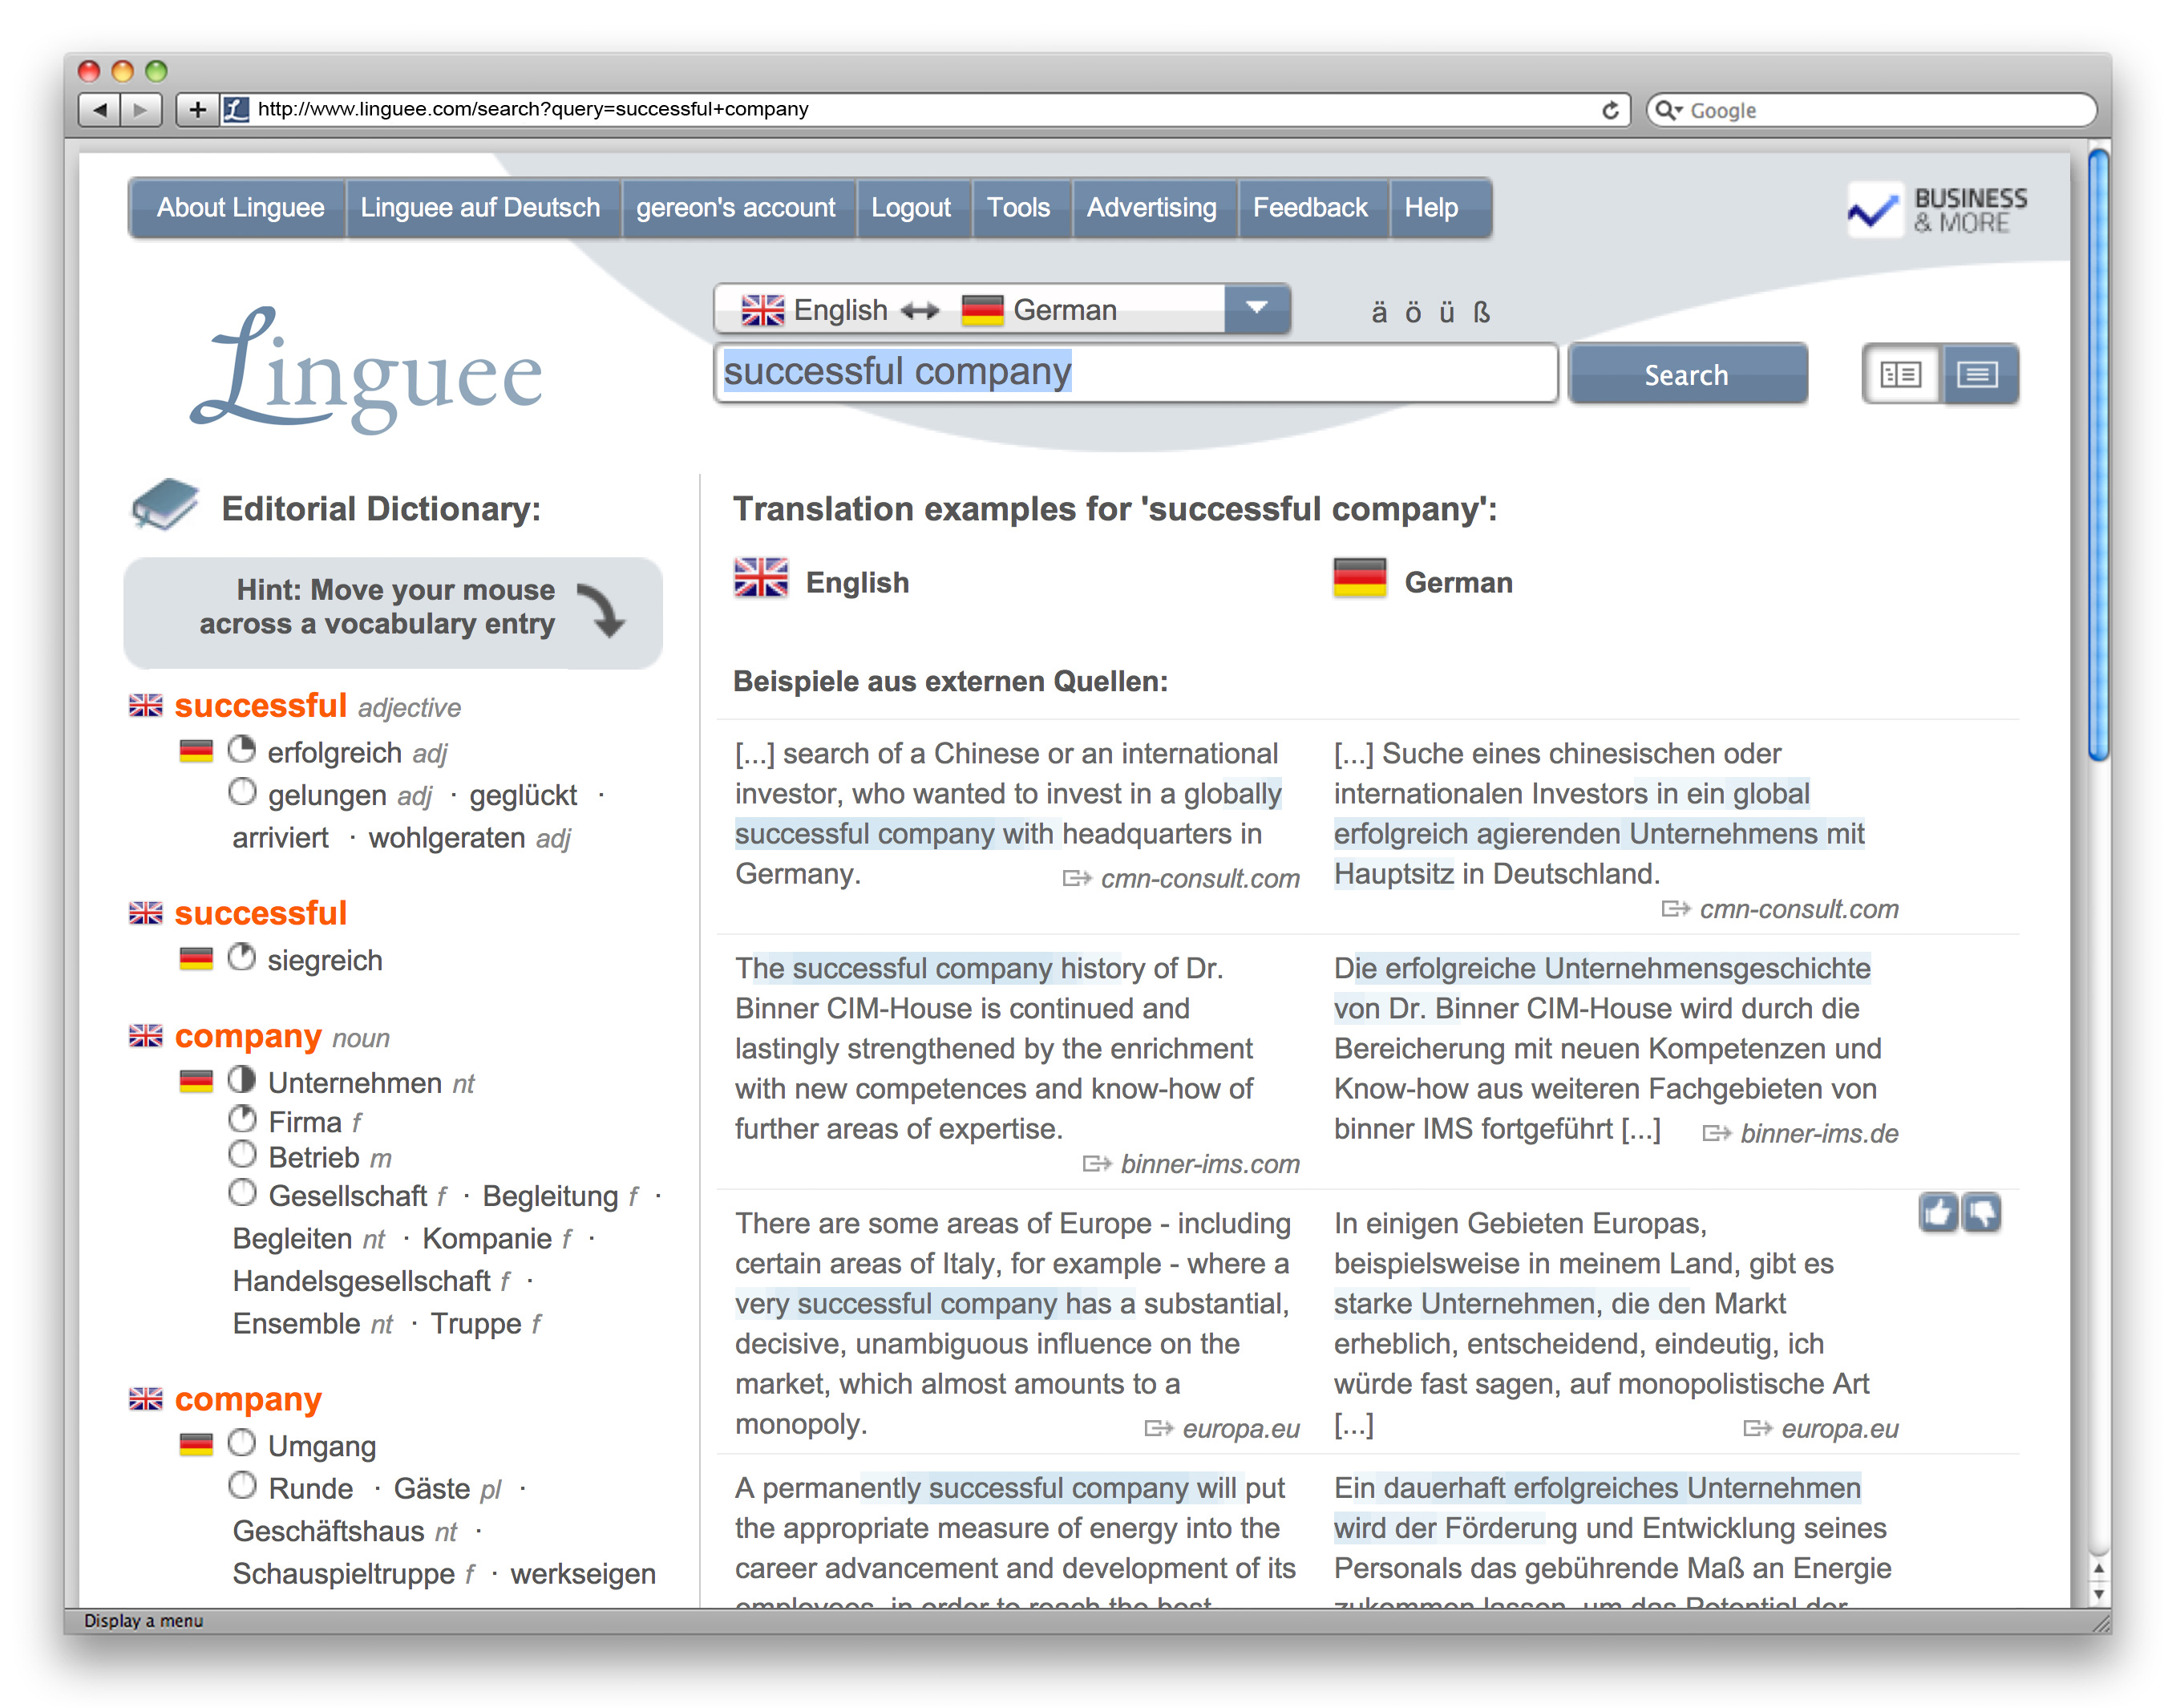 Linguee.com Reaches 2 Billion Searches and Adds New Languages